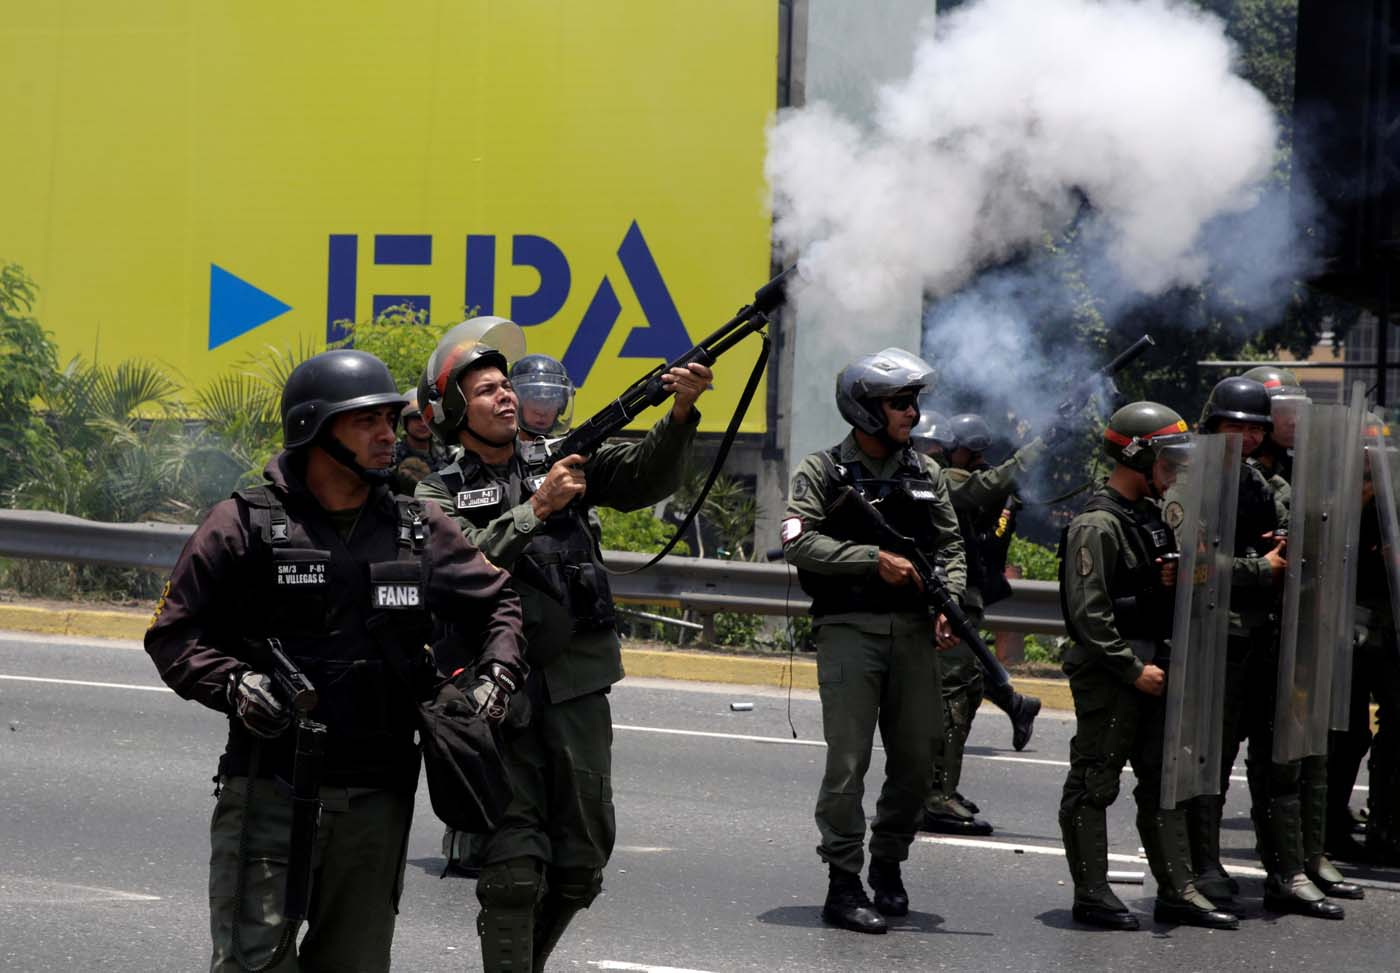 Riot police fire tear gas as demonstrators rally against Venezuela's President Nicolas Maduro's government in Caracas, Venezuela April 10, 2017. REUTERS/Carlos Garcia Rawlins